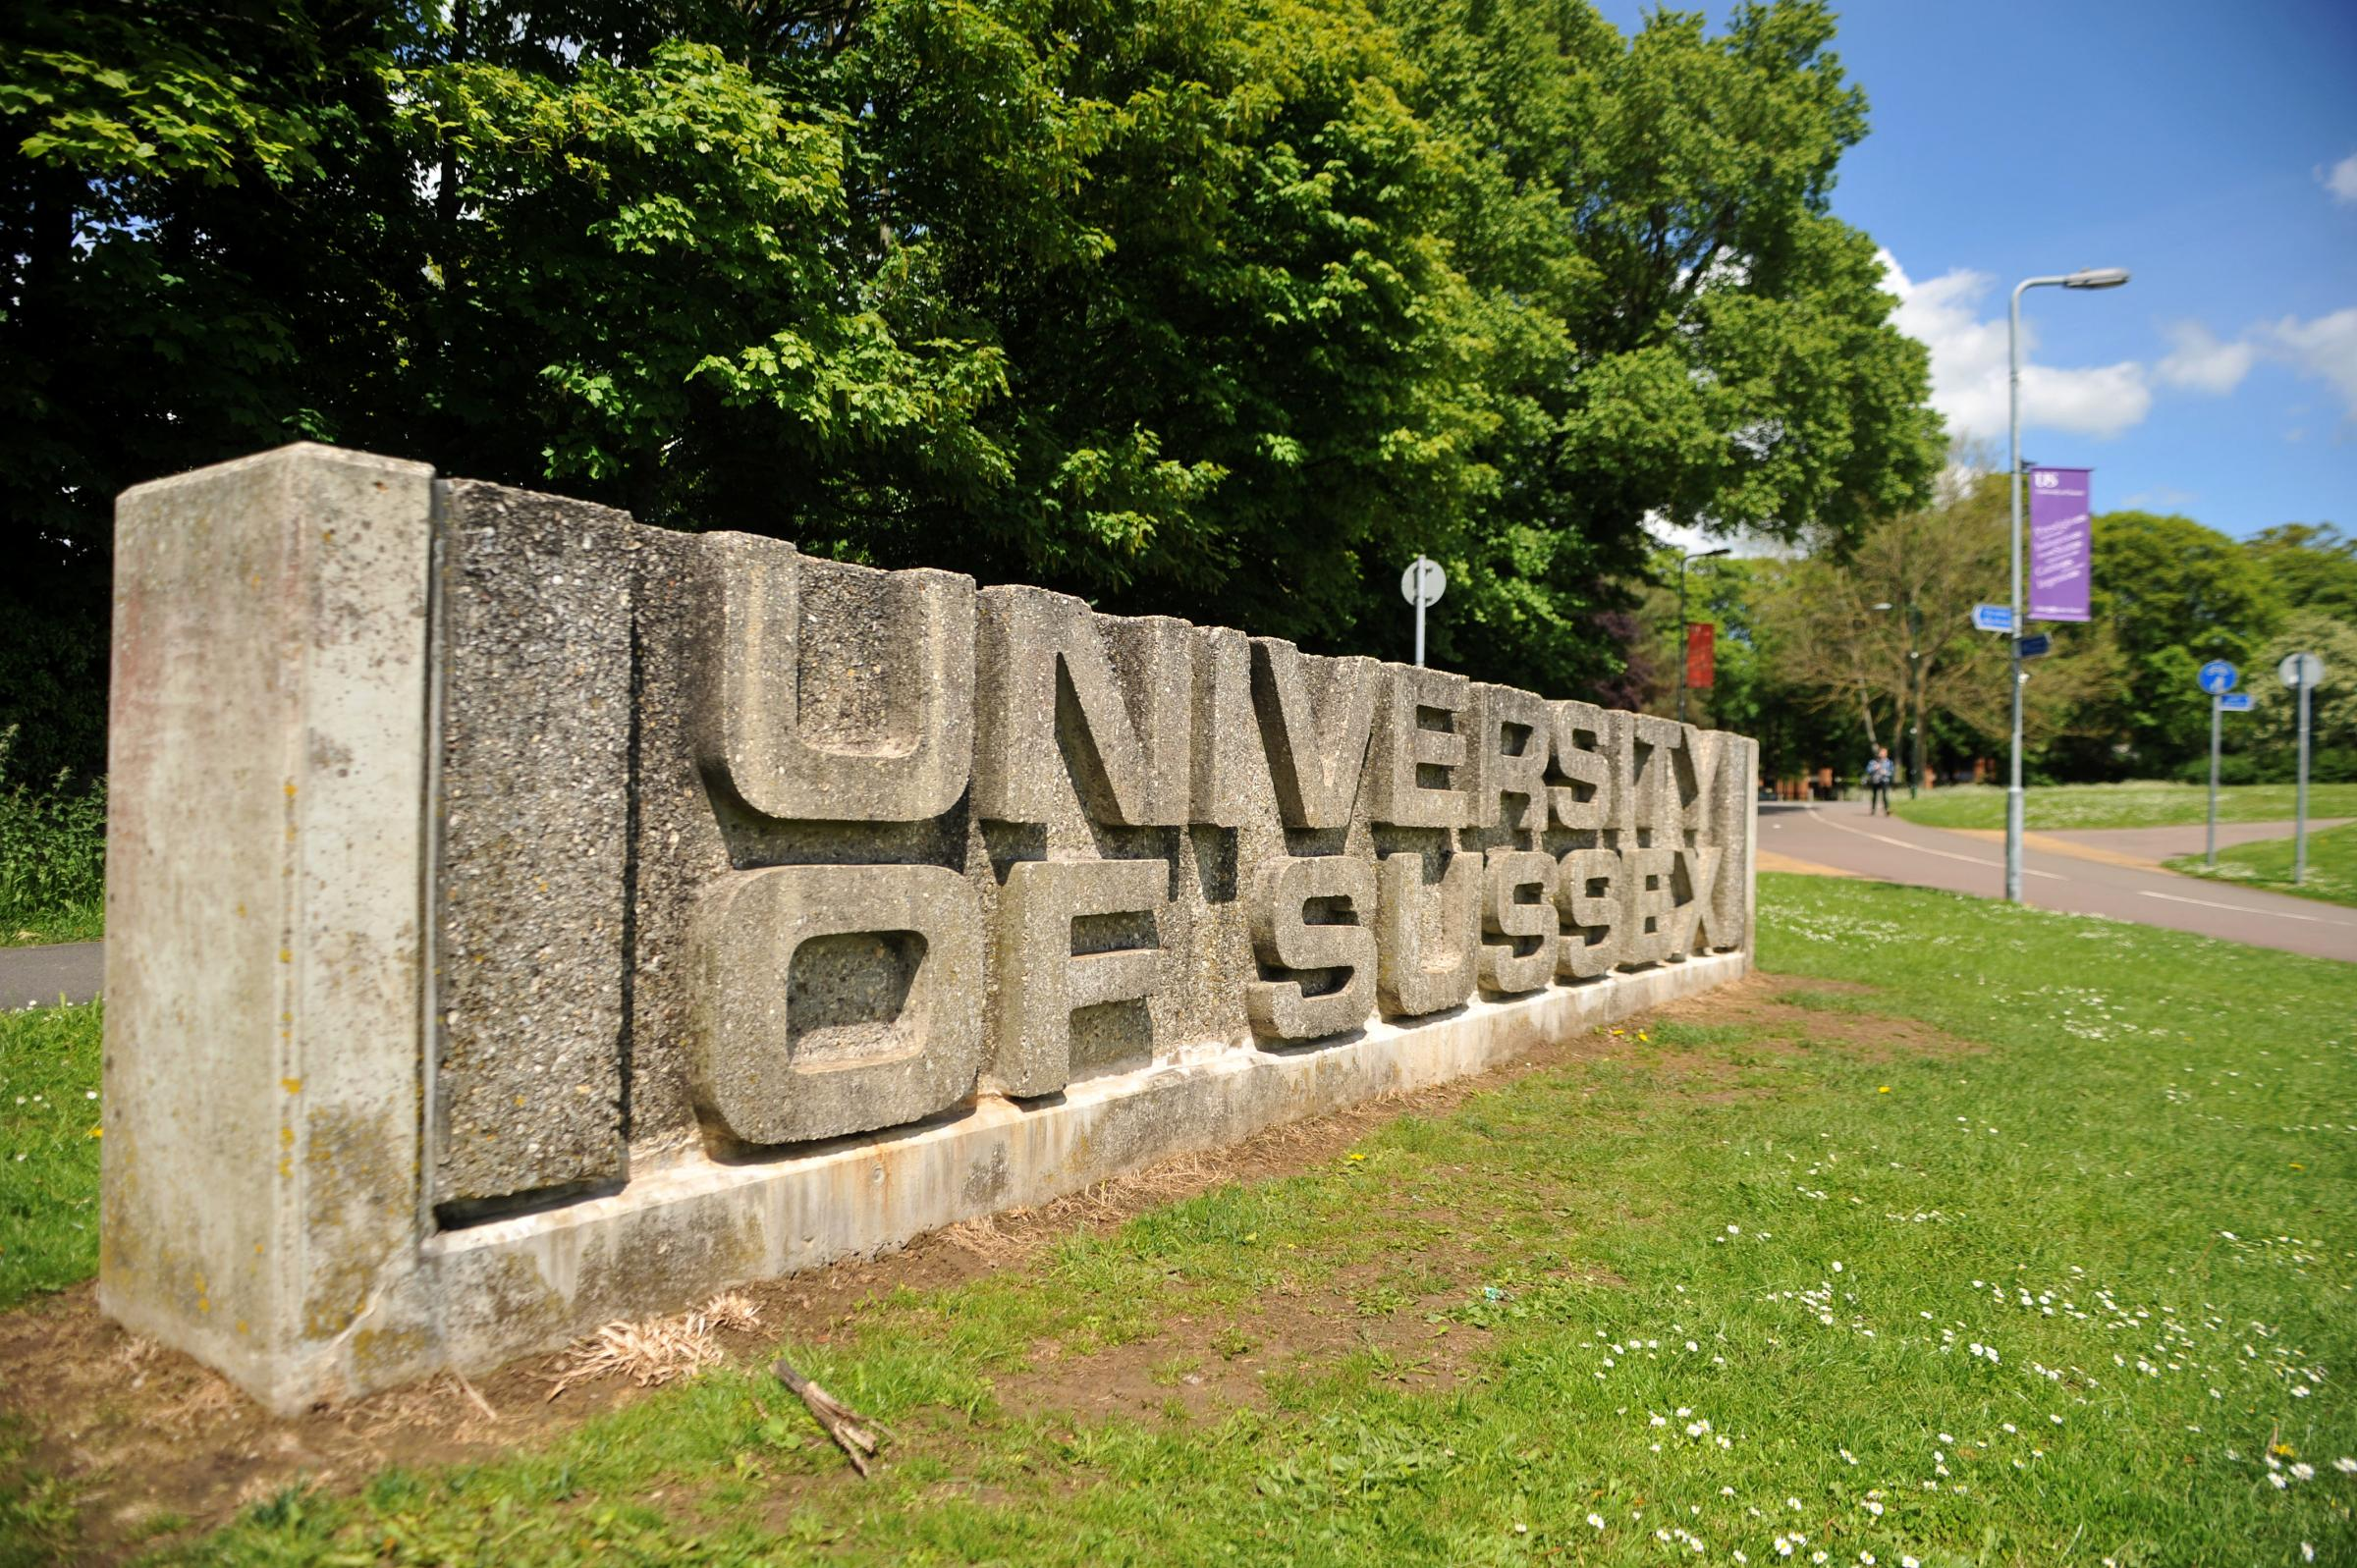 Sussex University expansion plans fall through